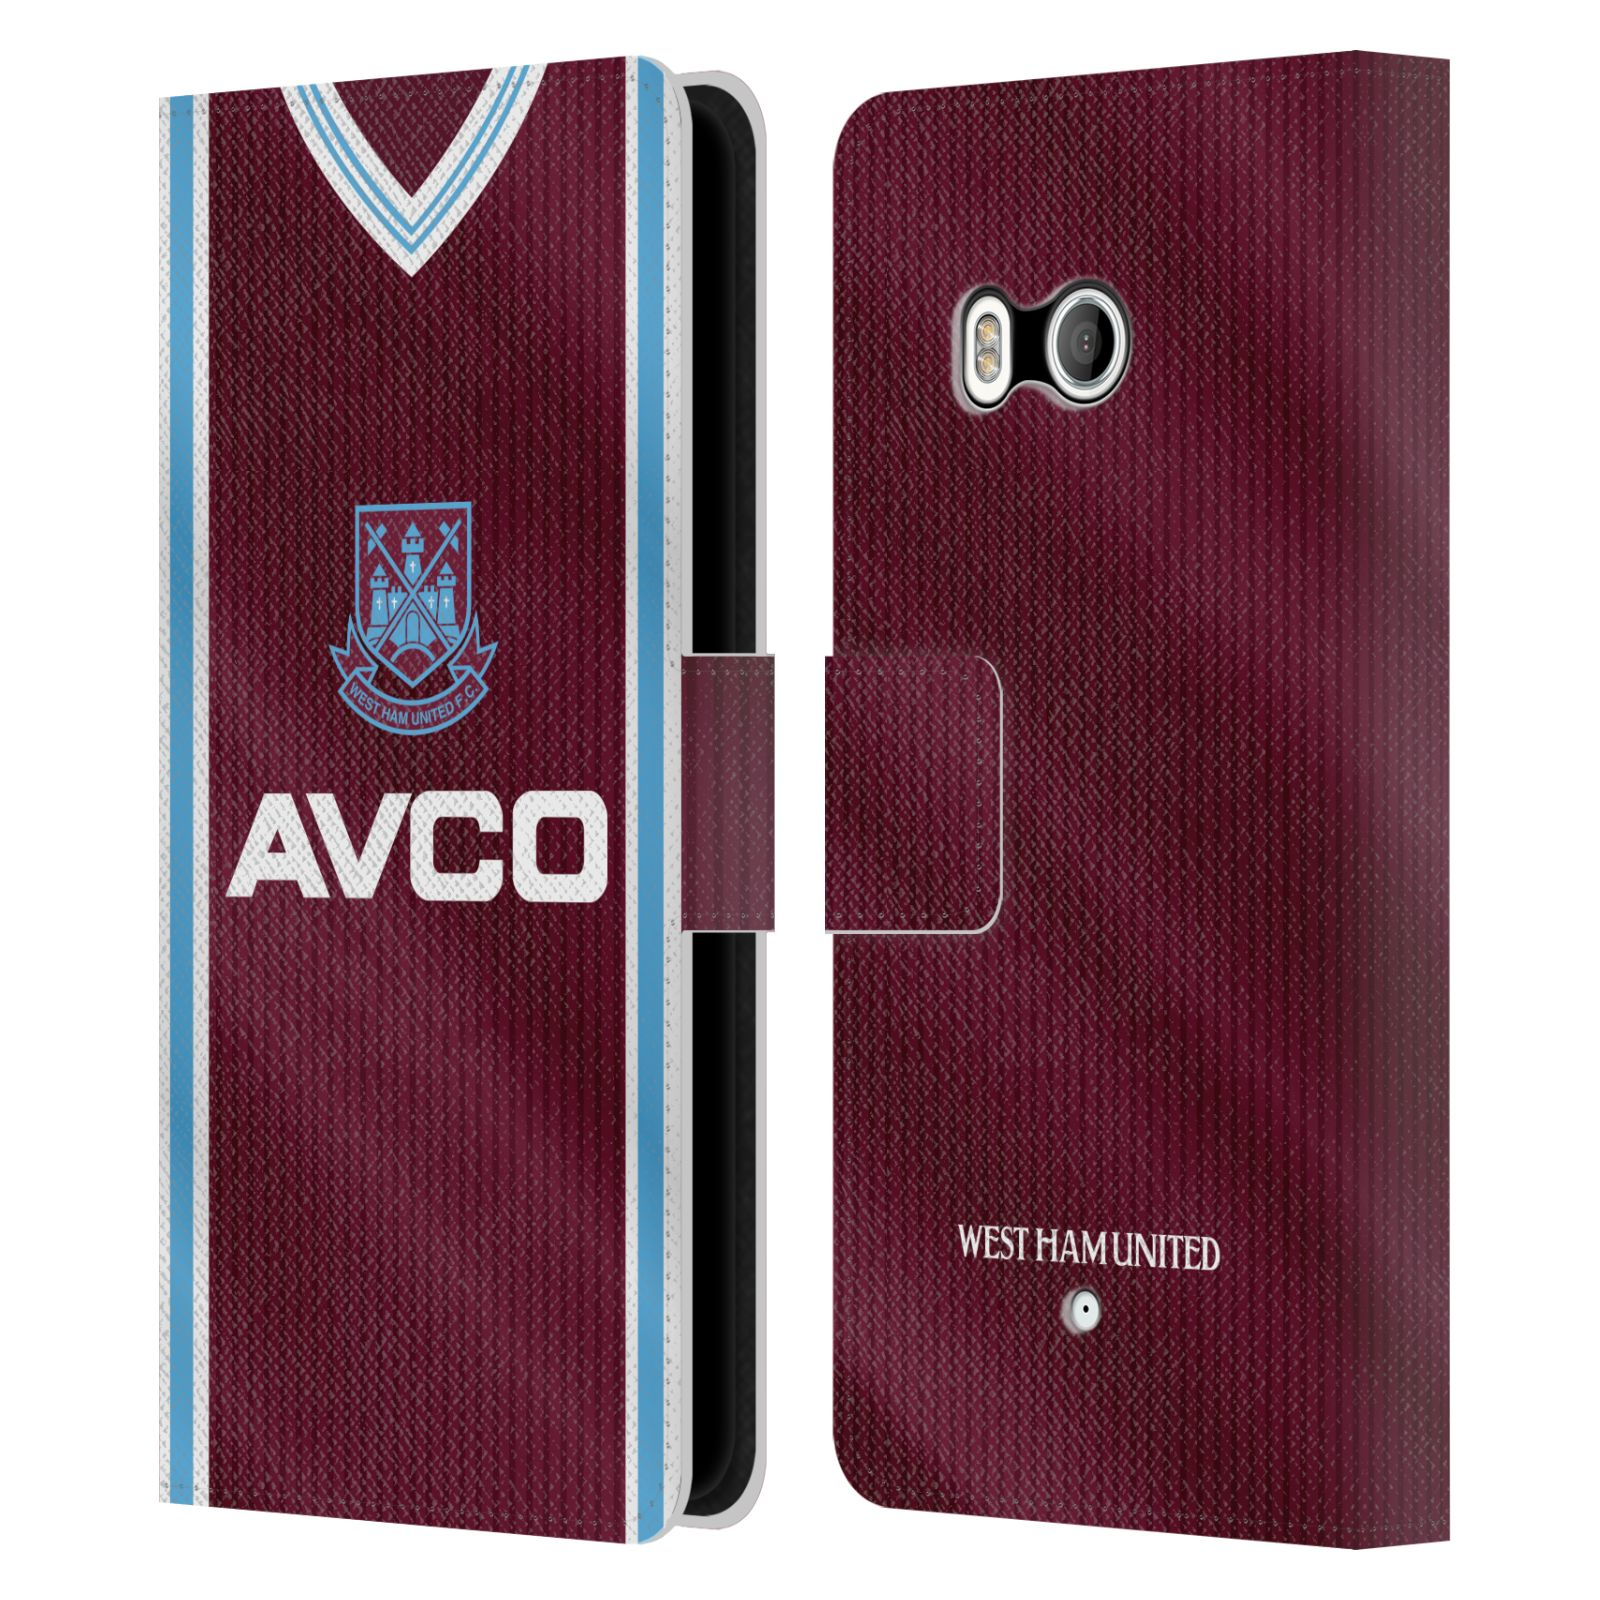 OFFICIAL-WEST-HAM-UNITED-FC-RETRO-KITS-LEATHER-BOOK-WALLET-CASE-FOR-HTC-PHONES-1